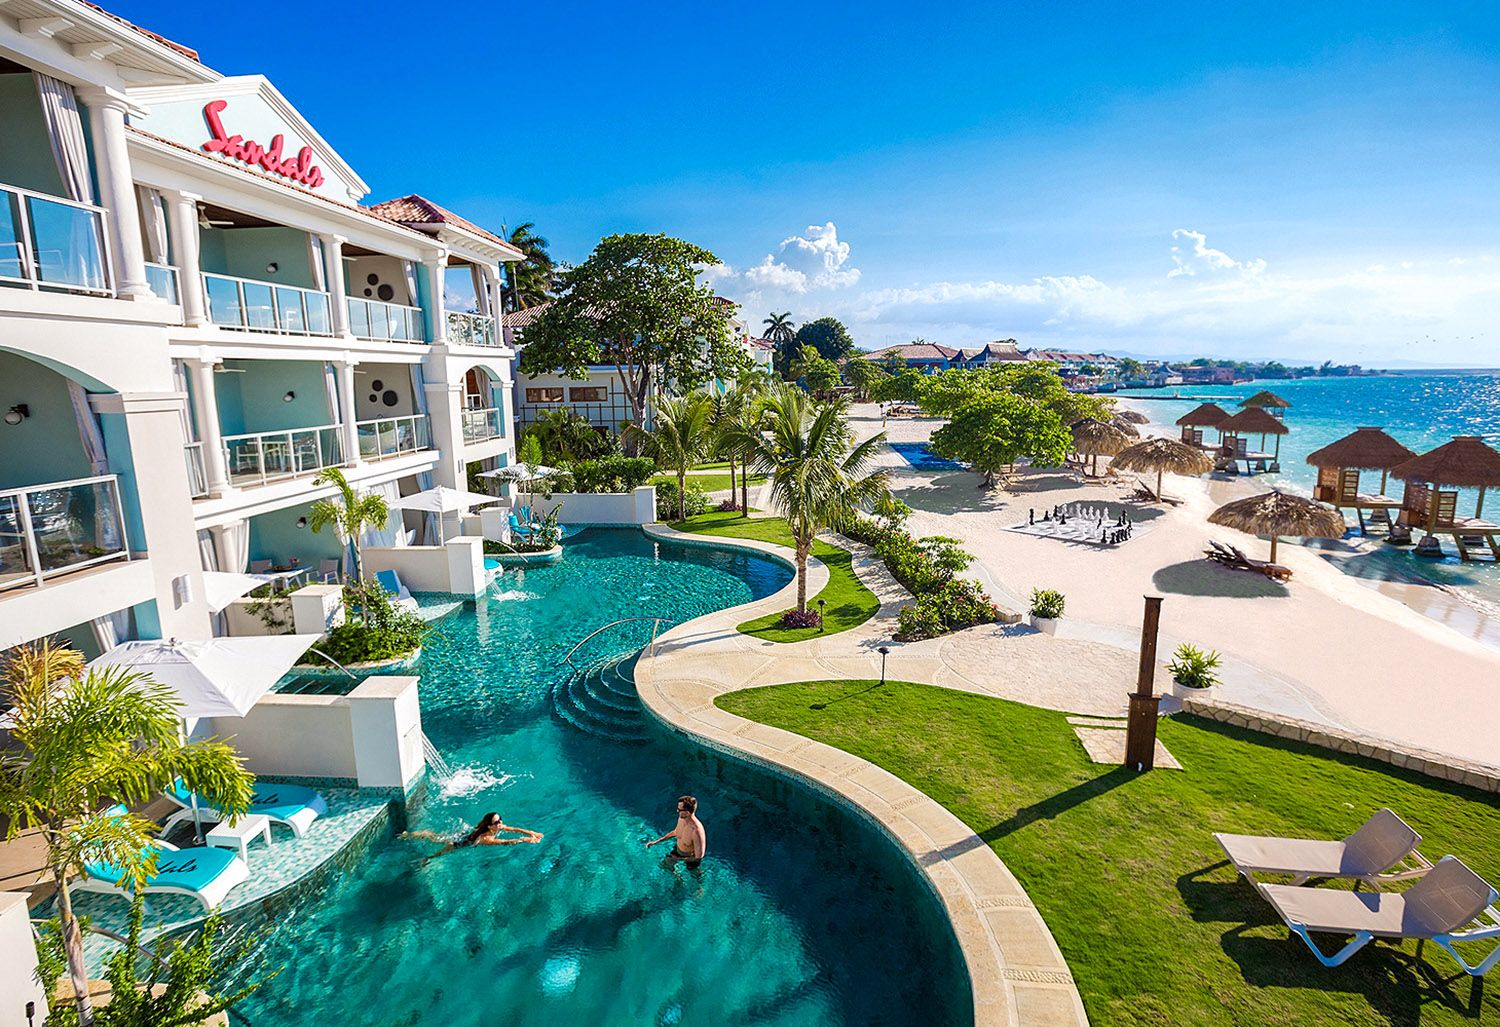 Sandals all-inclusive resort in Montego Bay